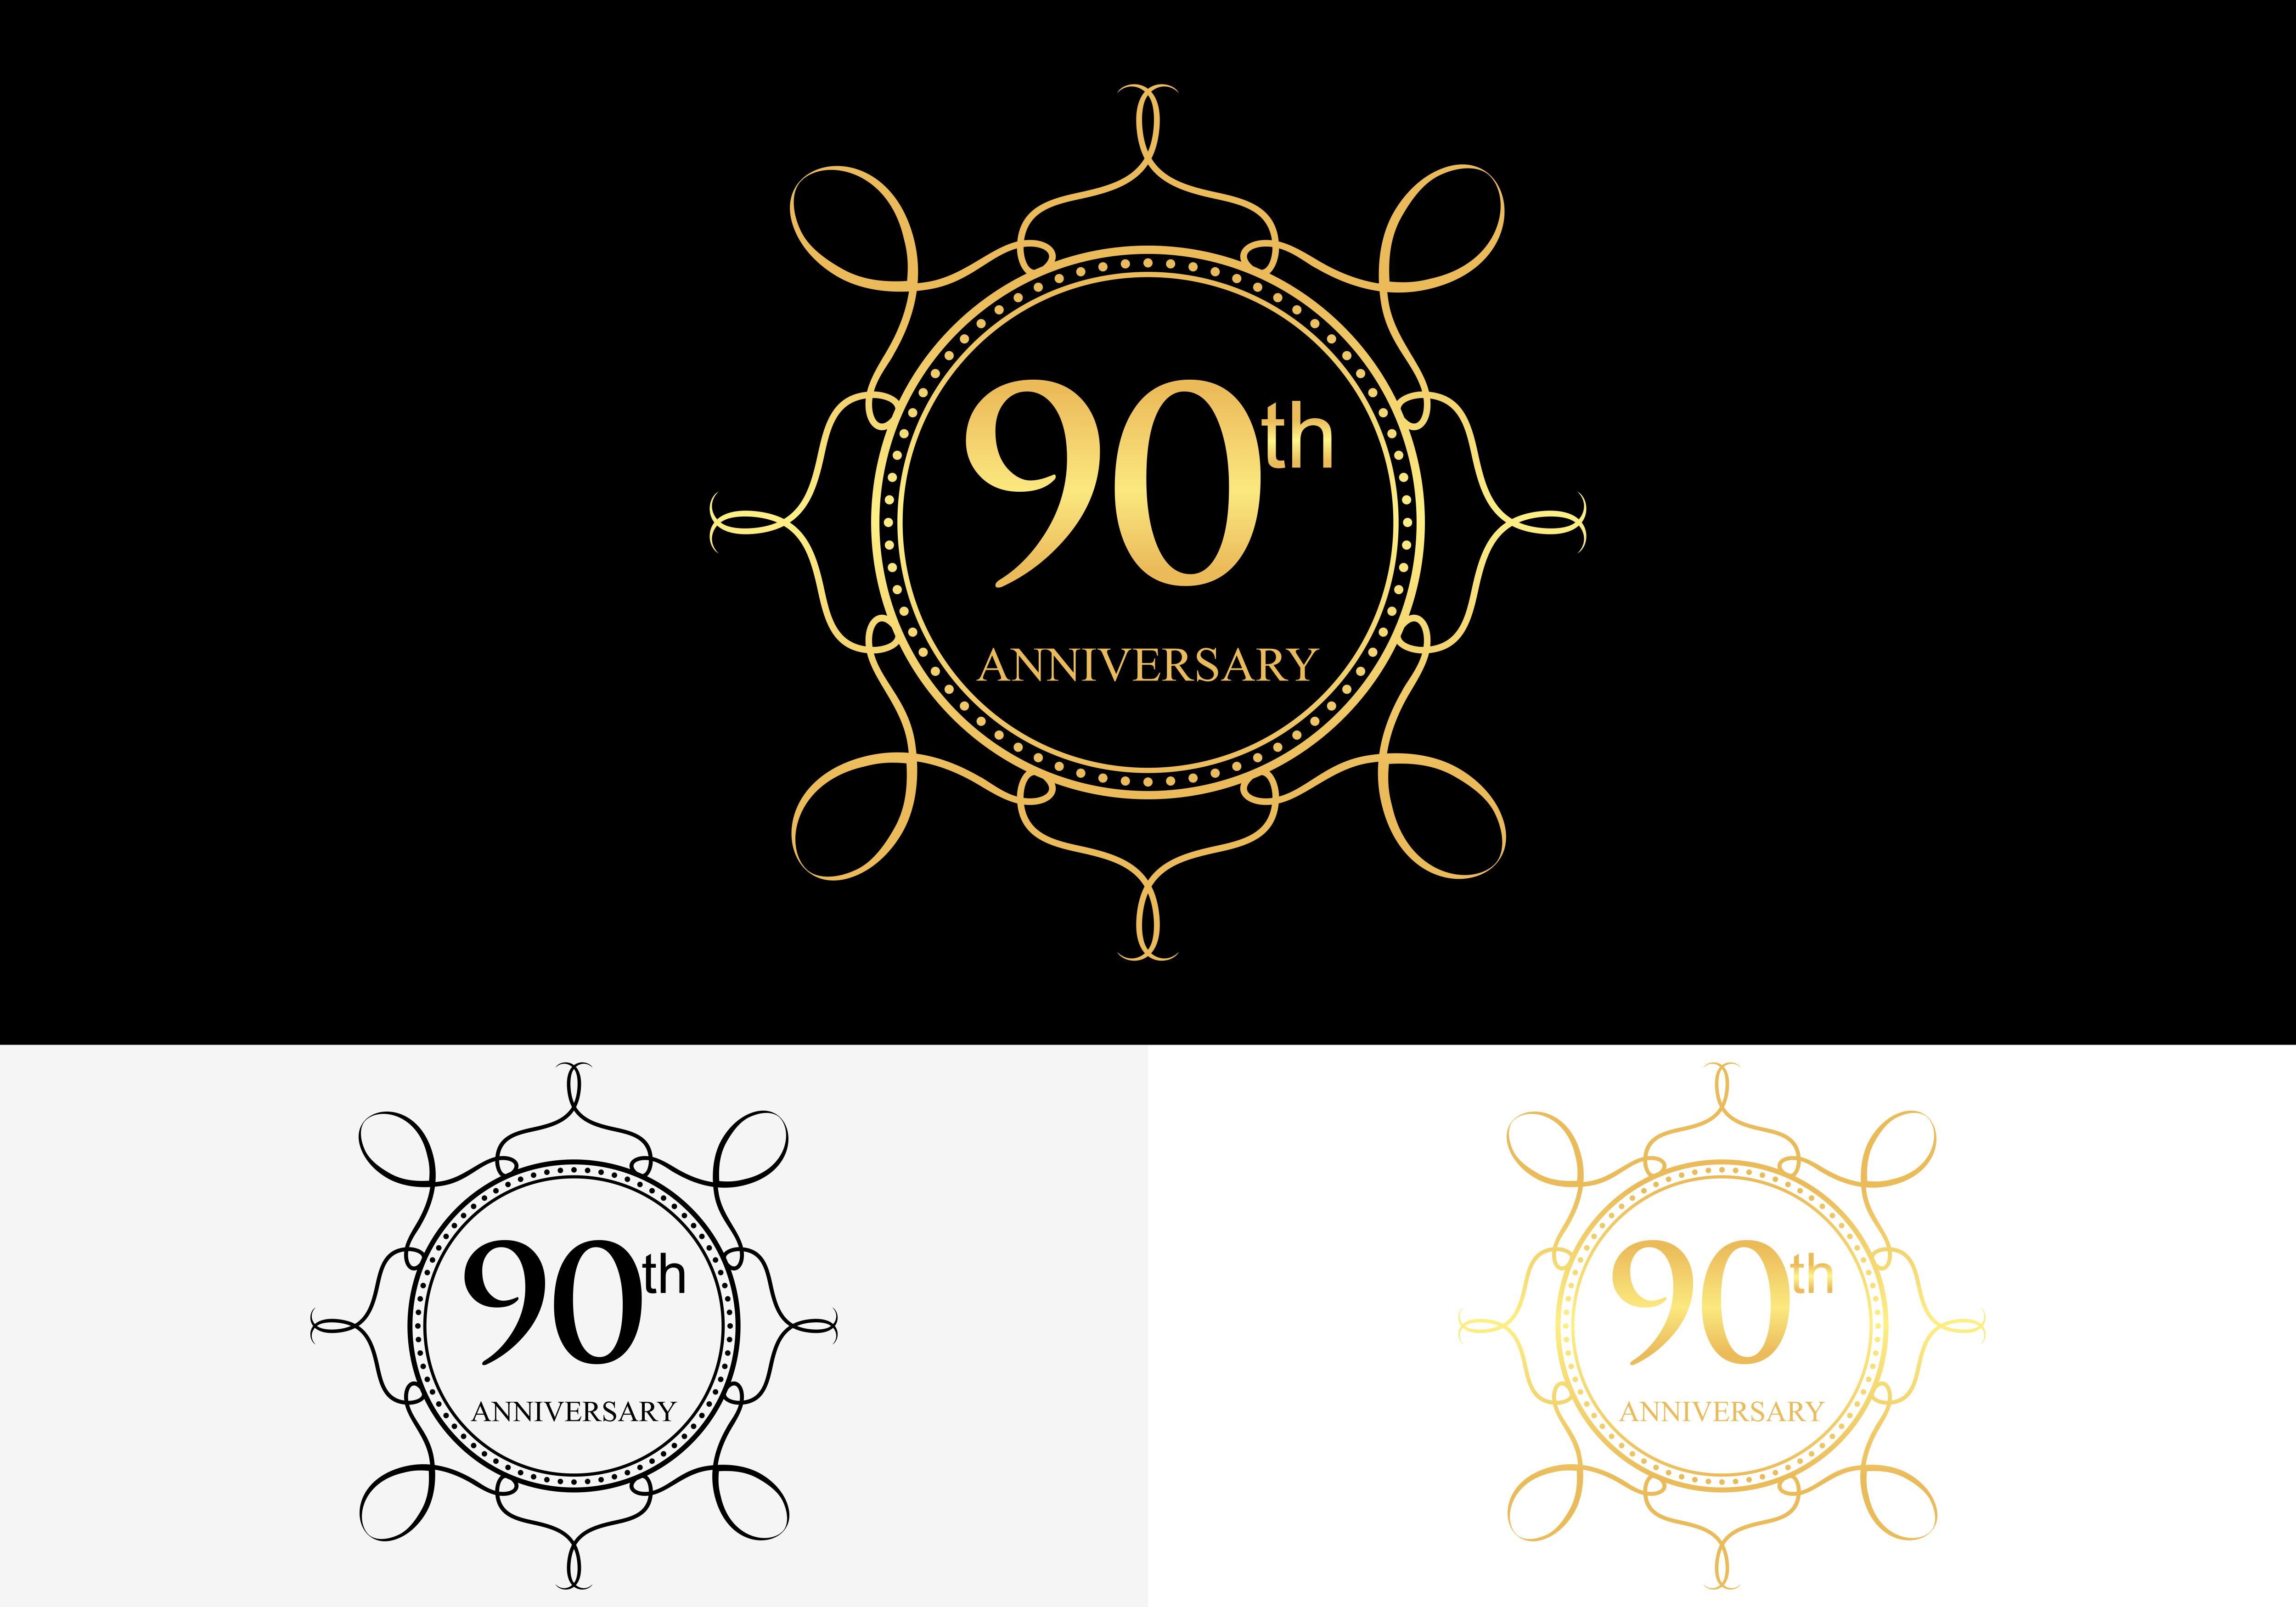 Download Free 90th 90 Year Anniversary Celebration Graphic By 2qnah for Cricut Explore, Silhouette and other cutting machines.